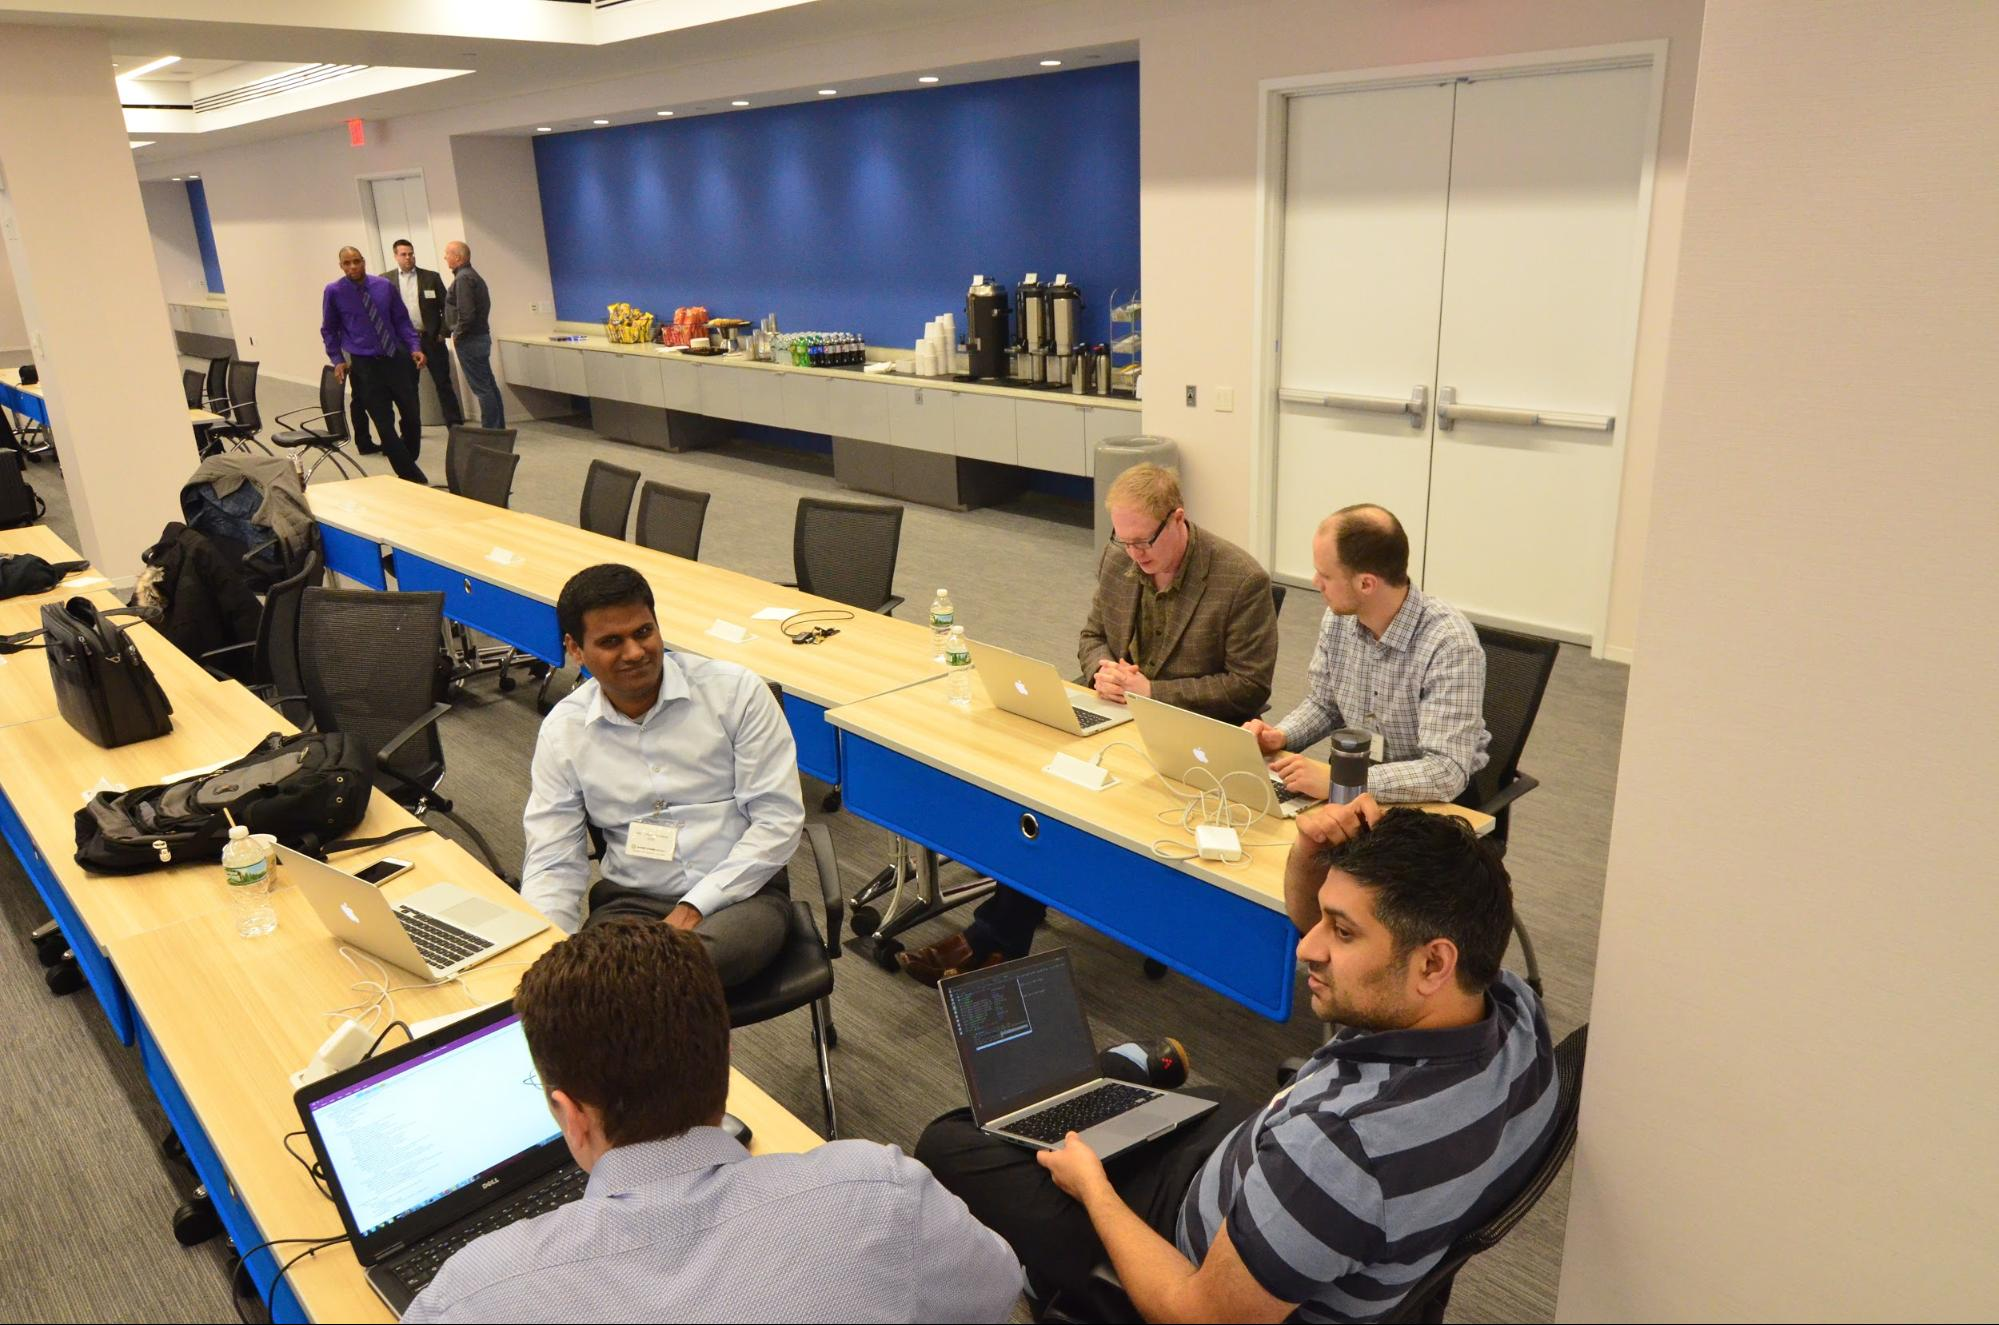 At work. Stan Liberman (on the far right) discusses the use case with Damien Briggs (on the far left)